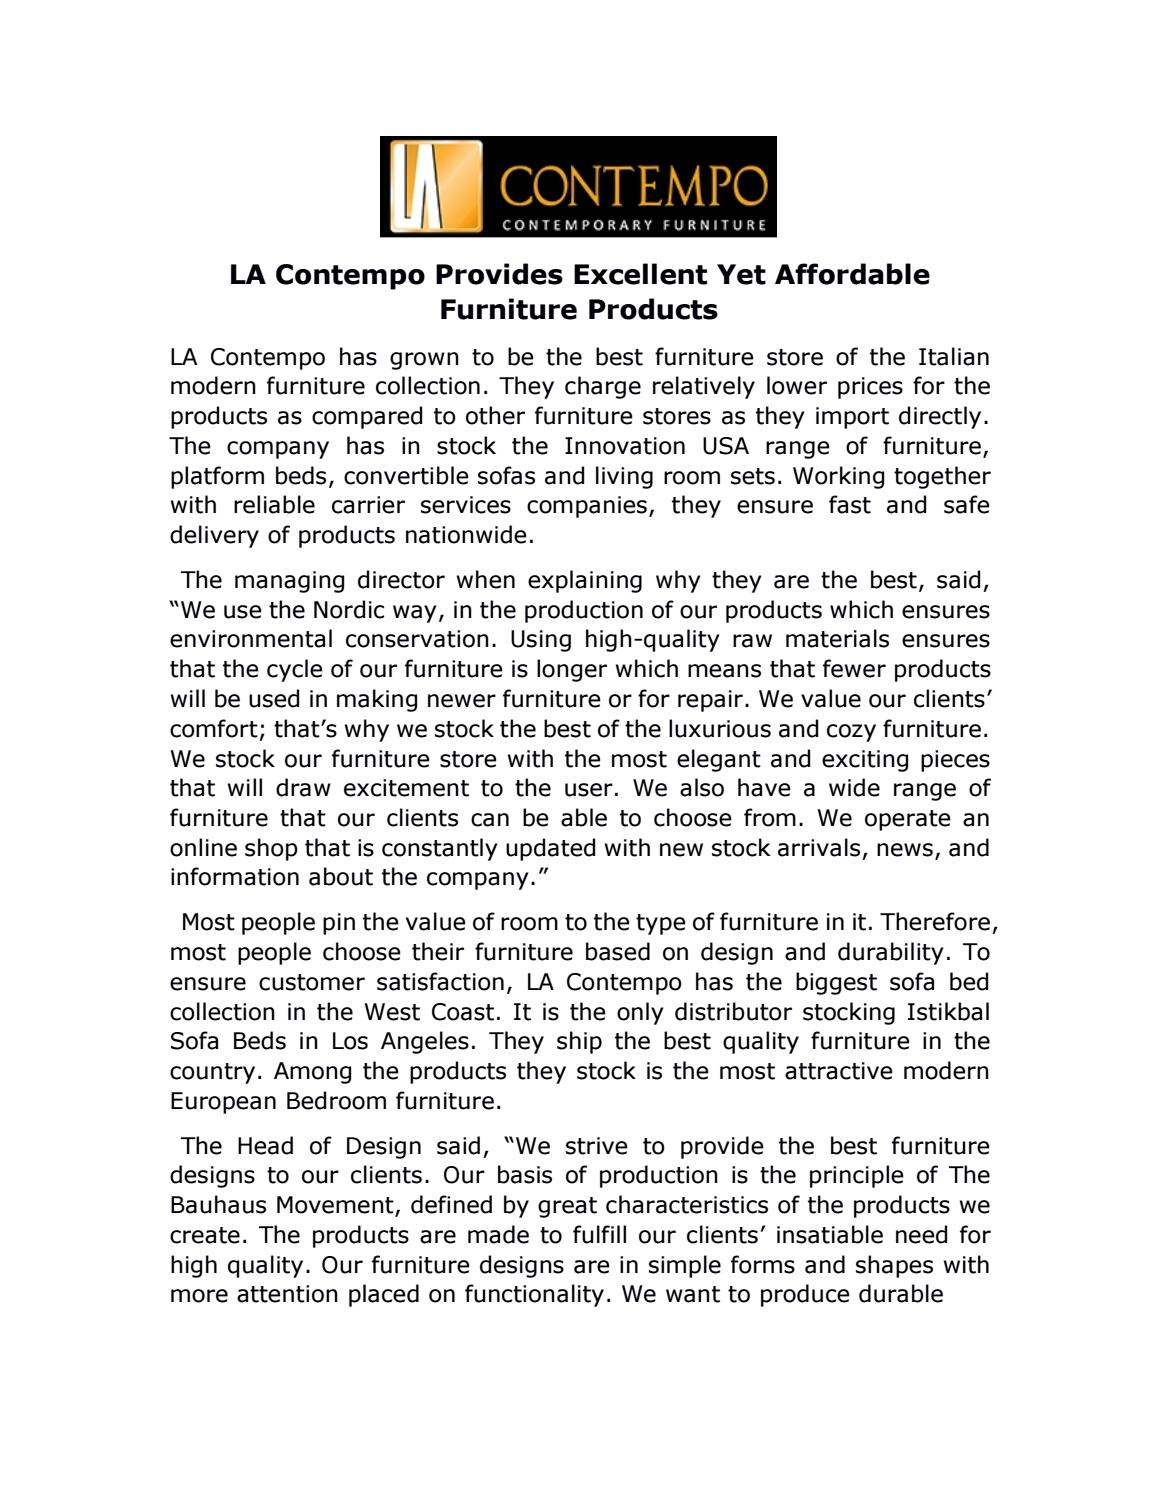 Awesome La Contempo Provides Excellent Yet Affordable Furniture Products By Ensar  Demirkan   Issuu